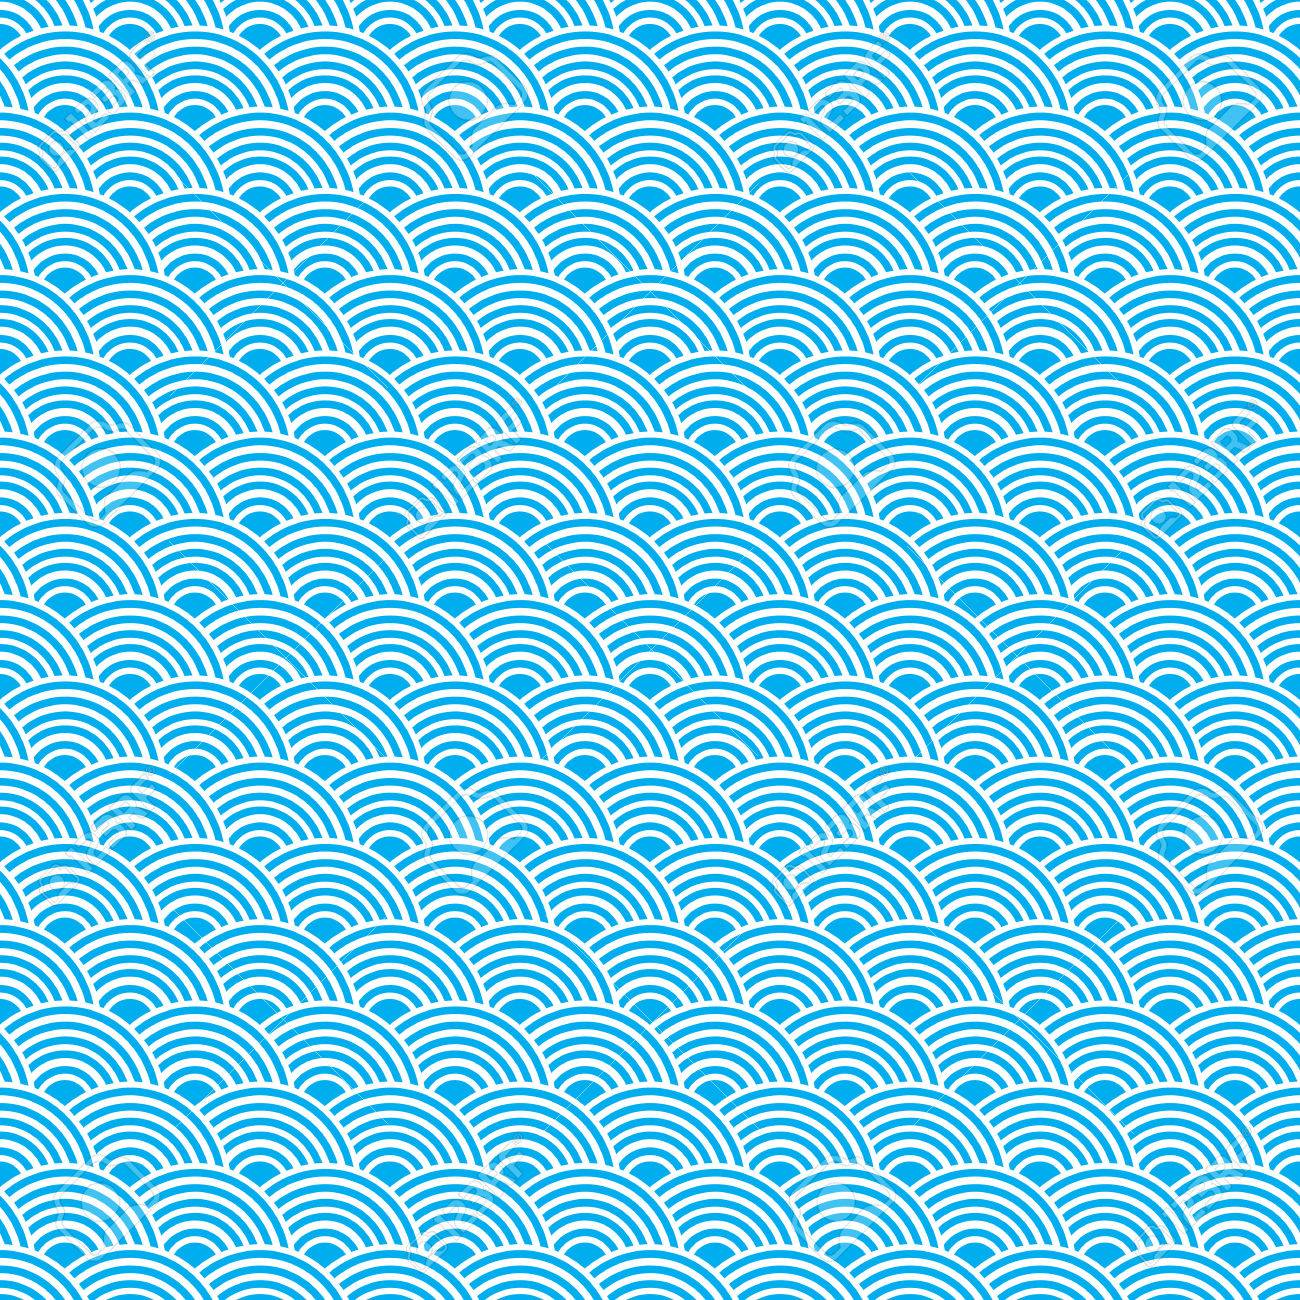 Ocean Wave Pattern Simple Inspiration Design